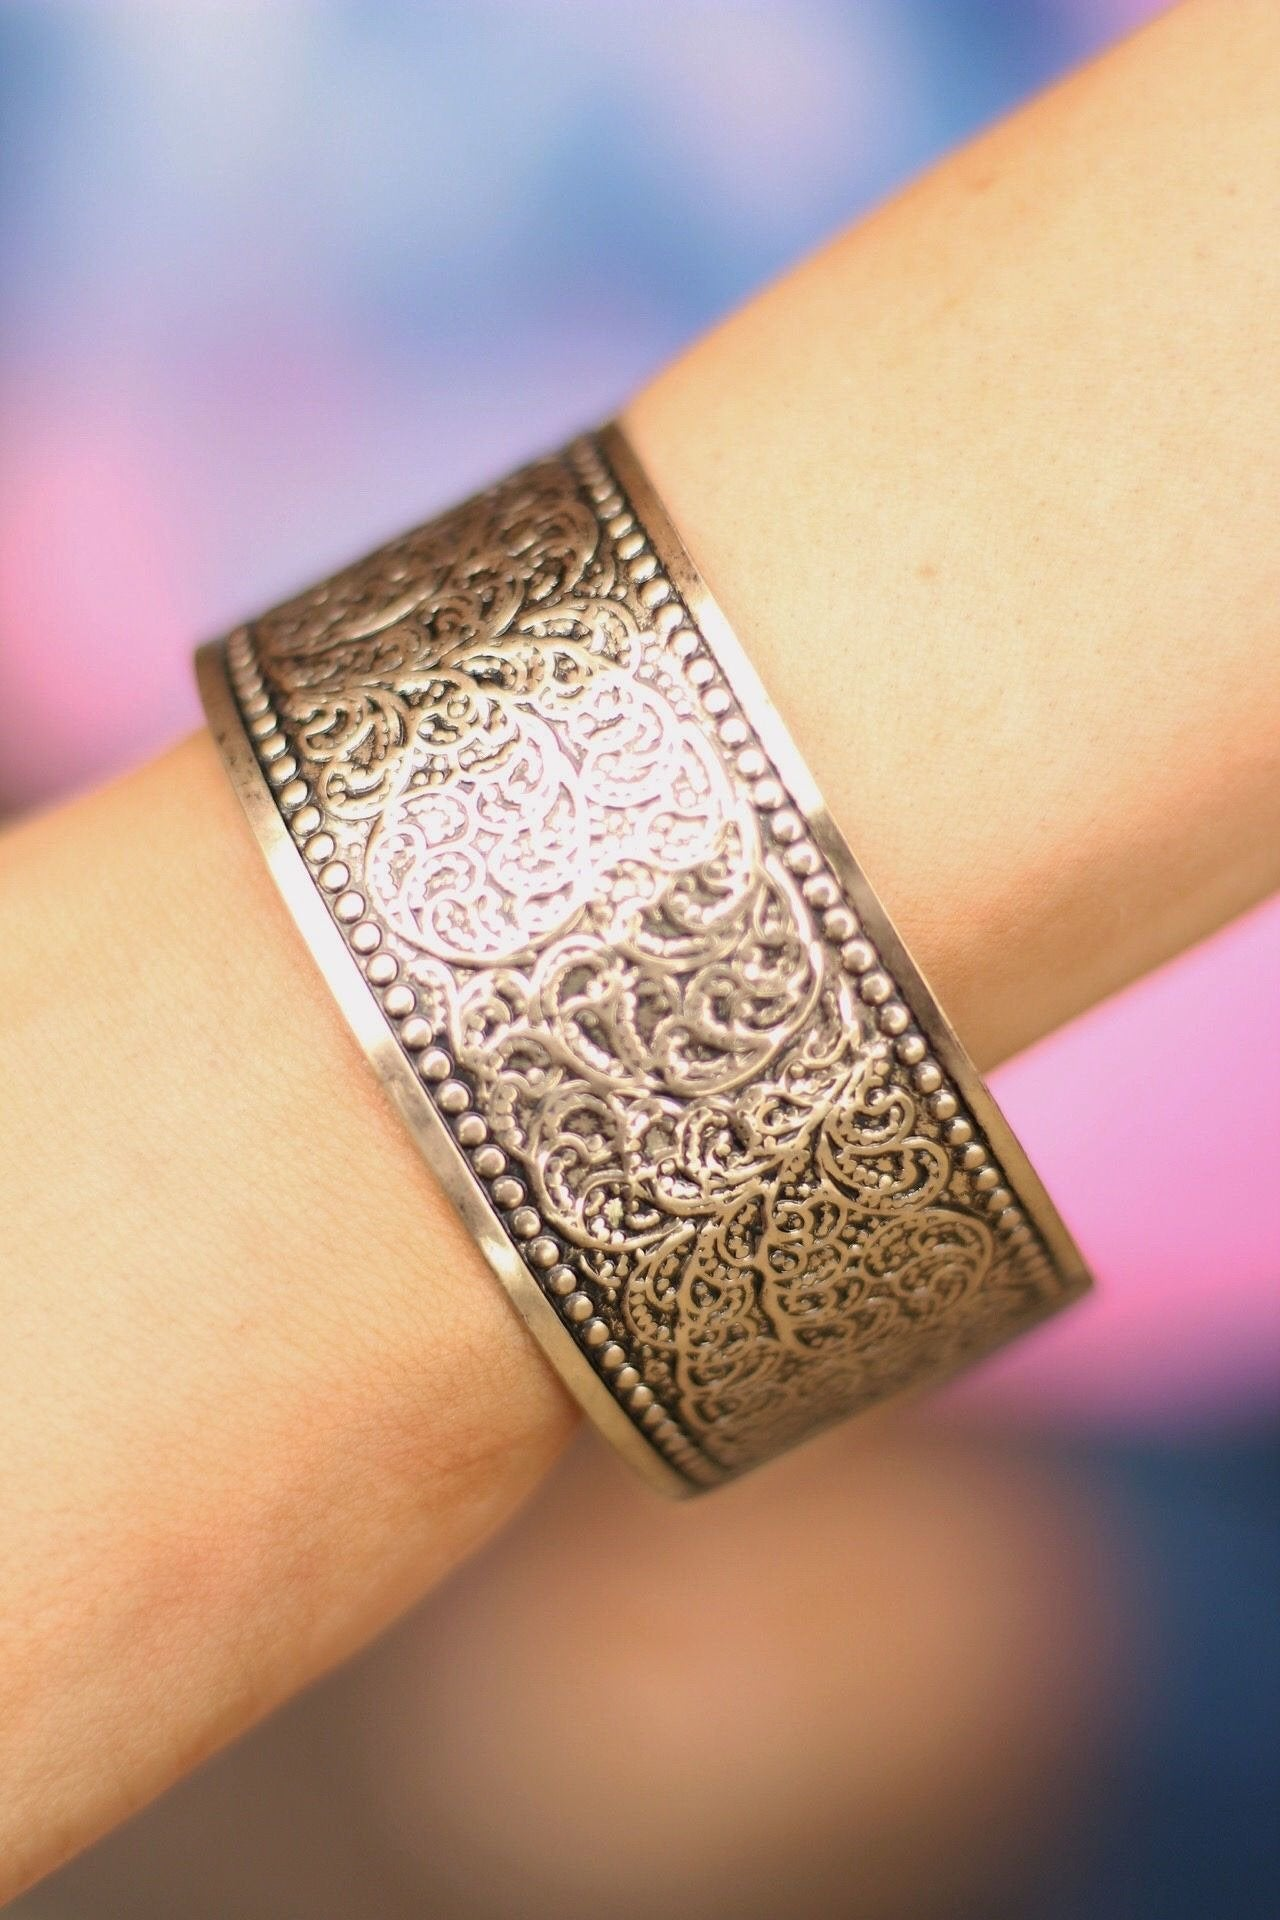 Filigree cuff bracelet in bronze